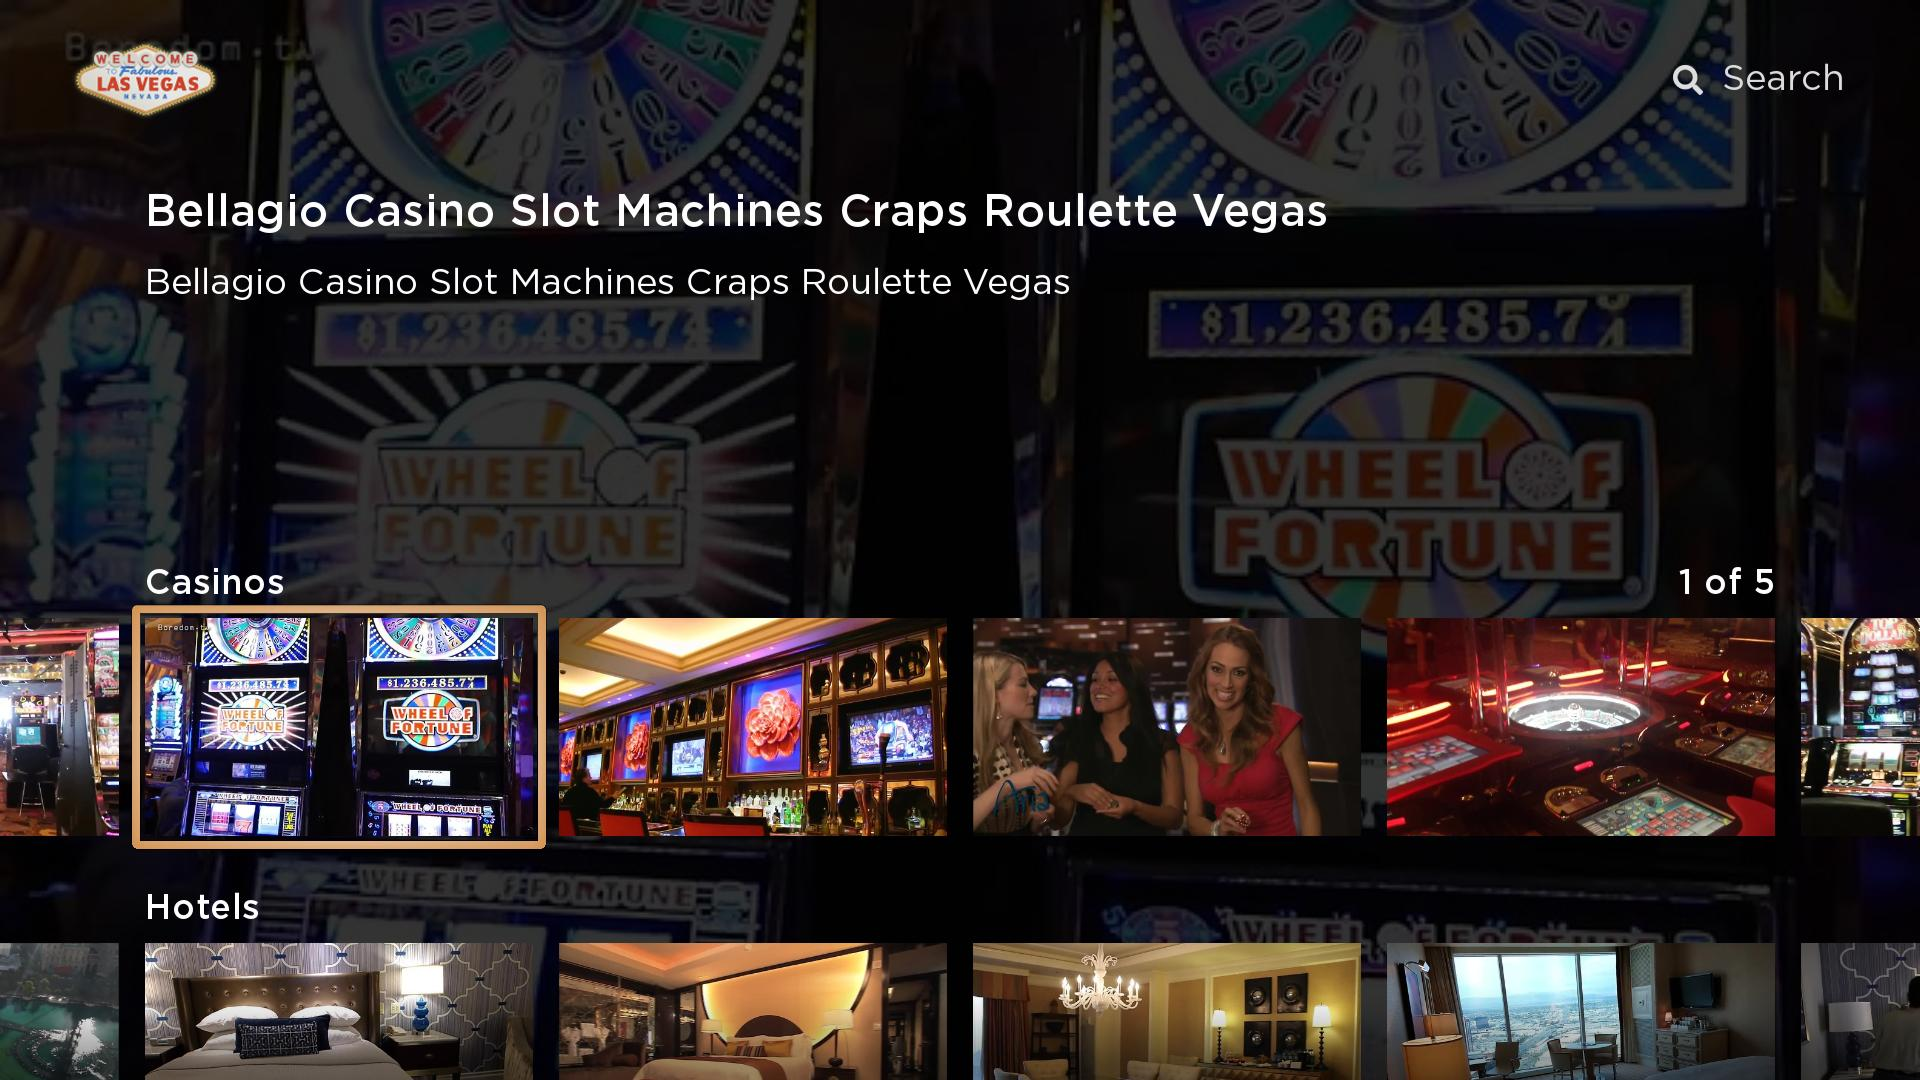 The Las Vegas Channel Screenshot 002